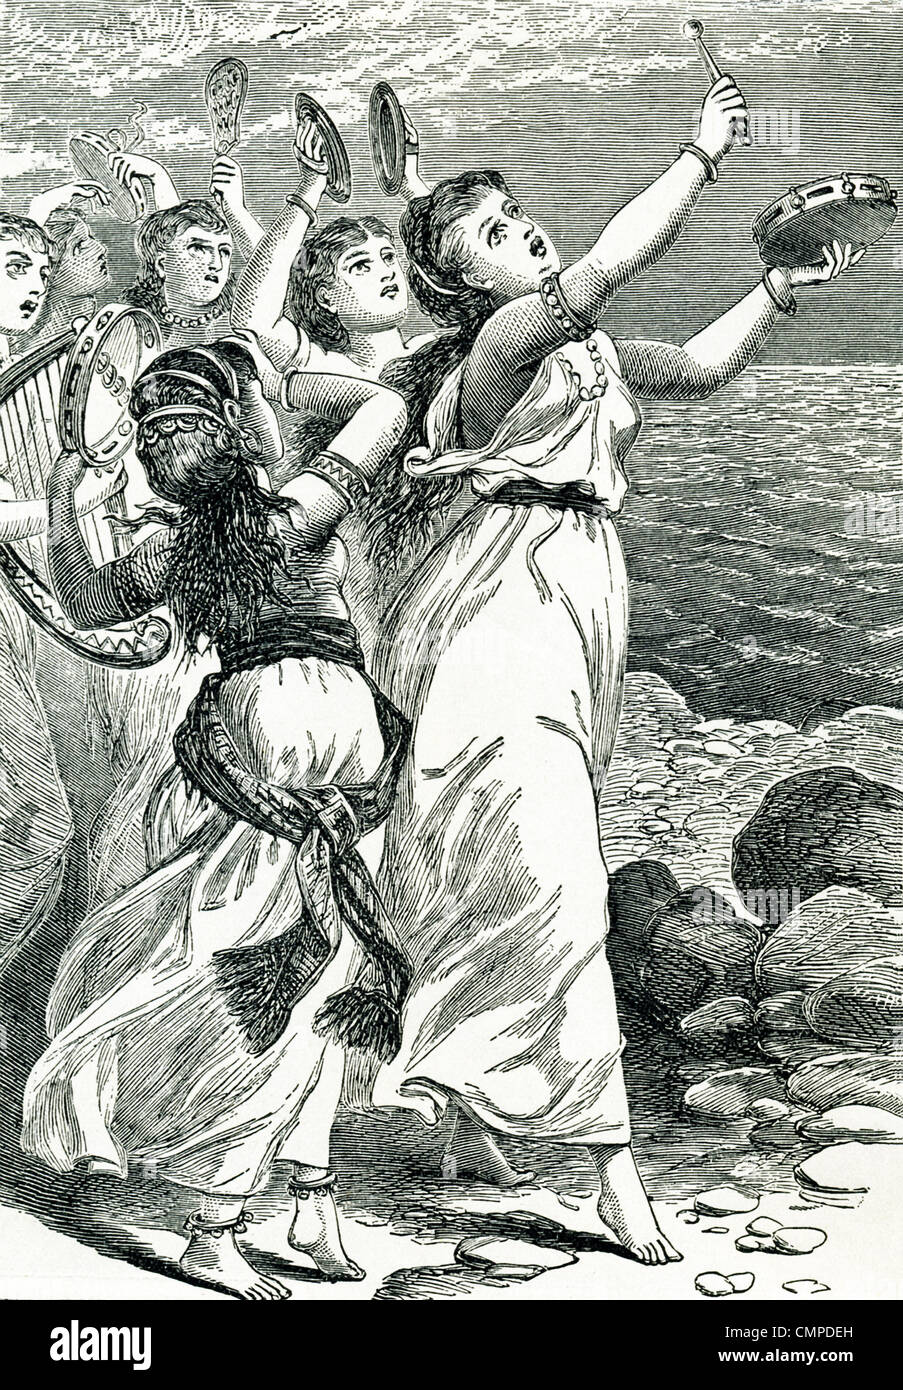 Miriam, the prophetess, was said to have led the women in song and dance to celebrate God's triumph over the - Stock Image